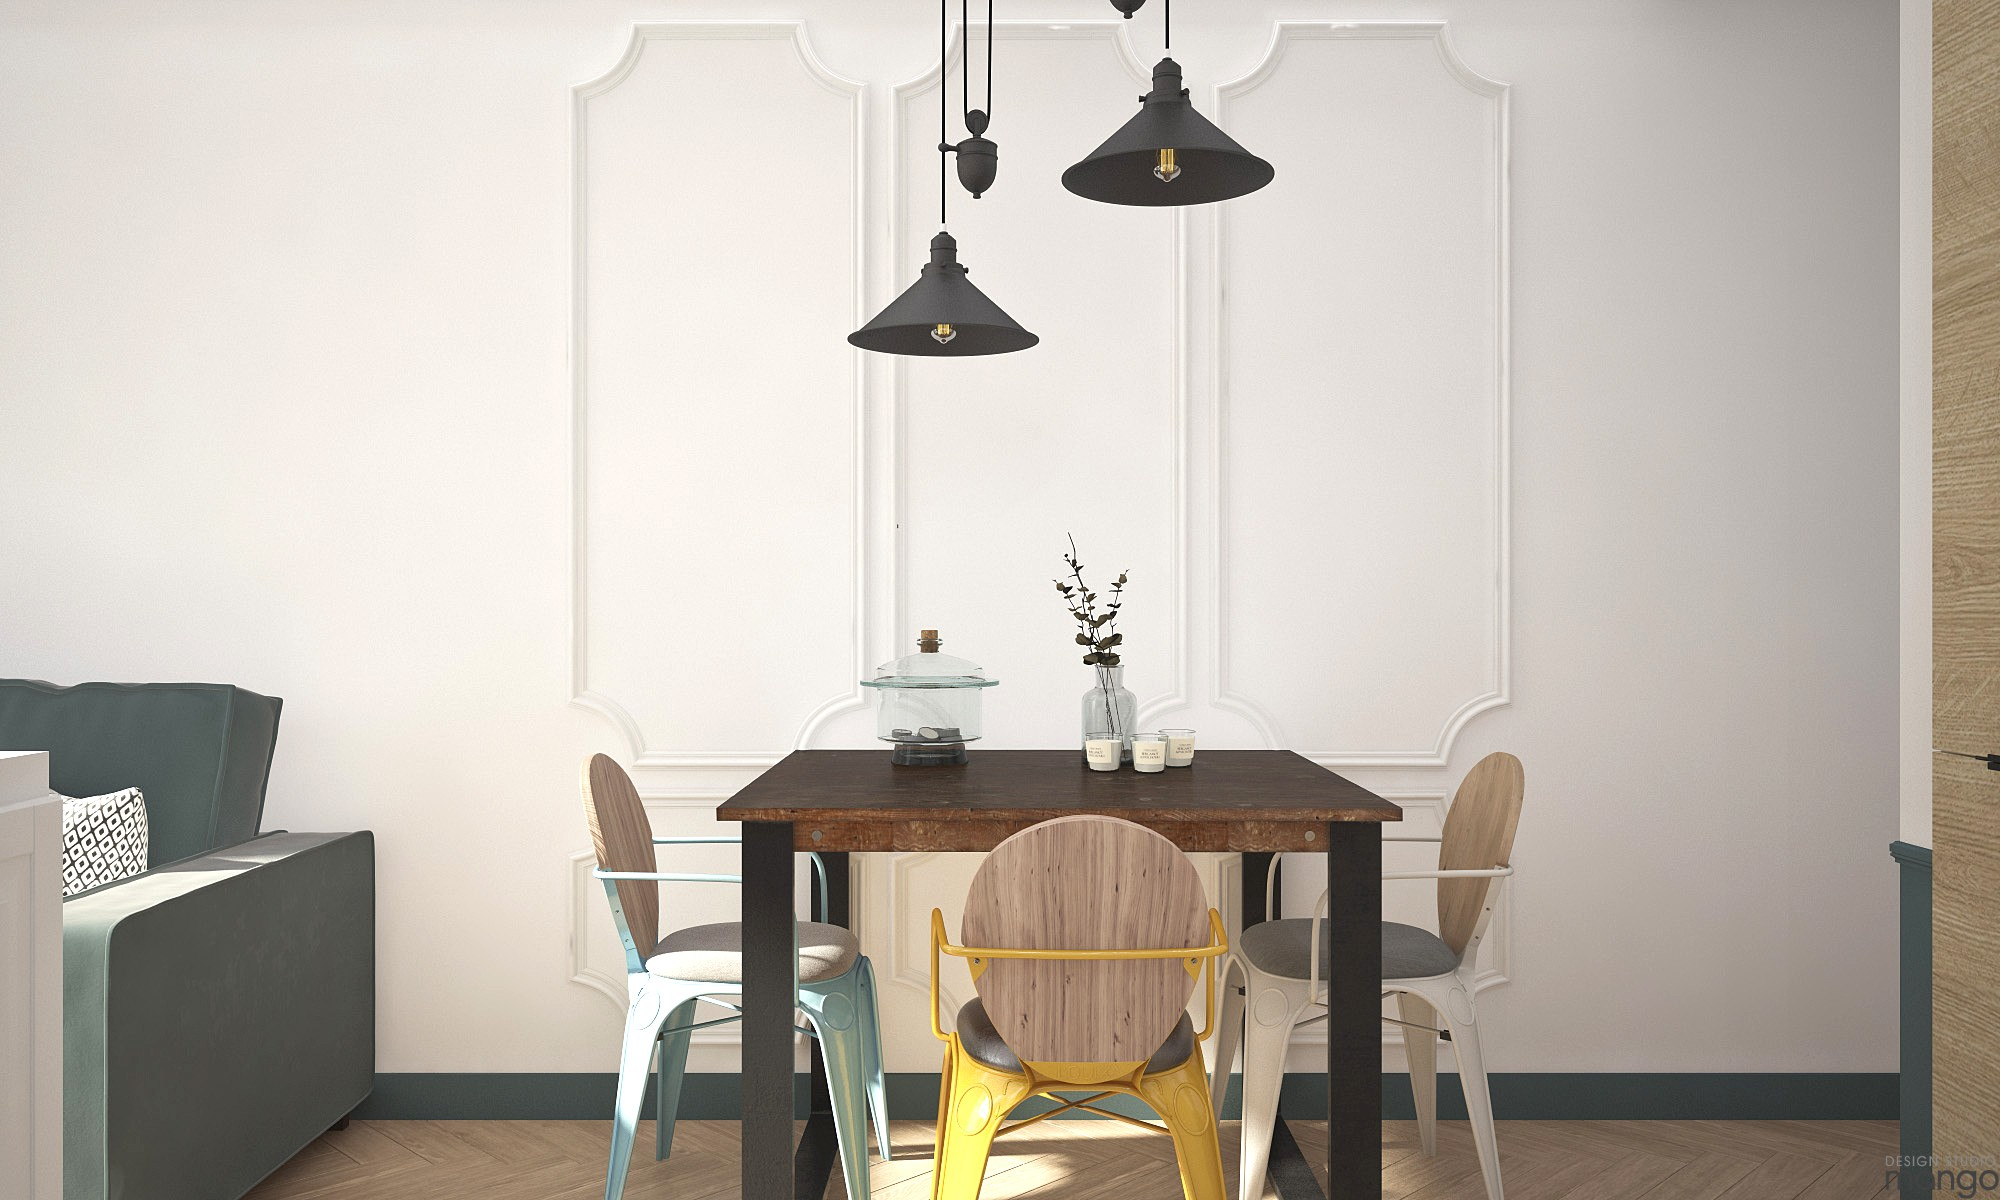 Design Studio Mango Minimalist Dining Room Decor